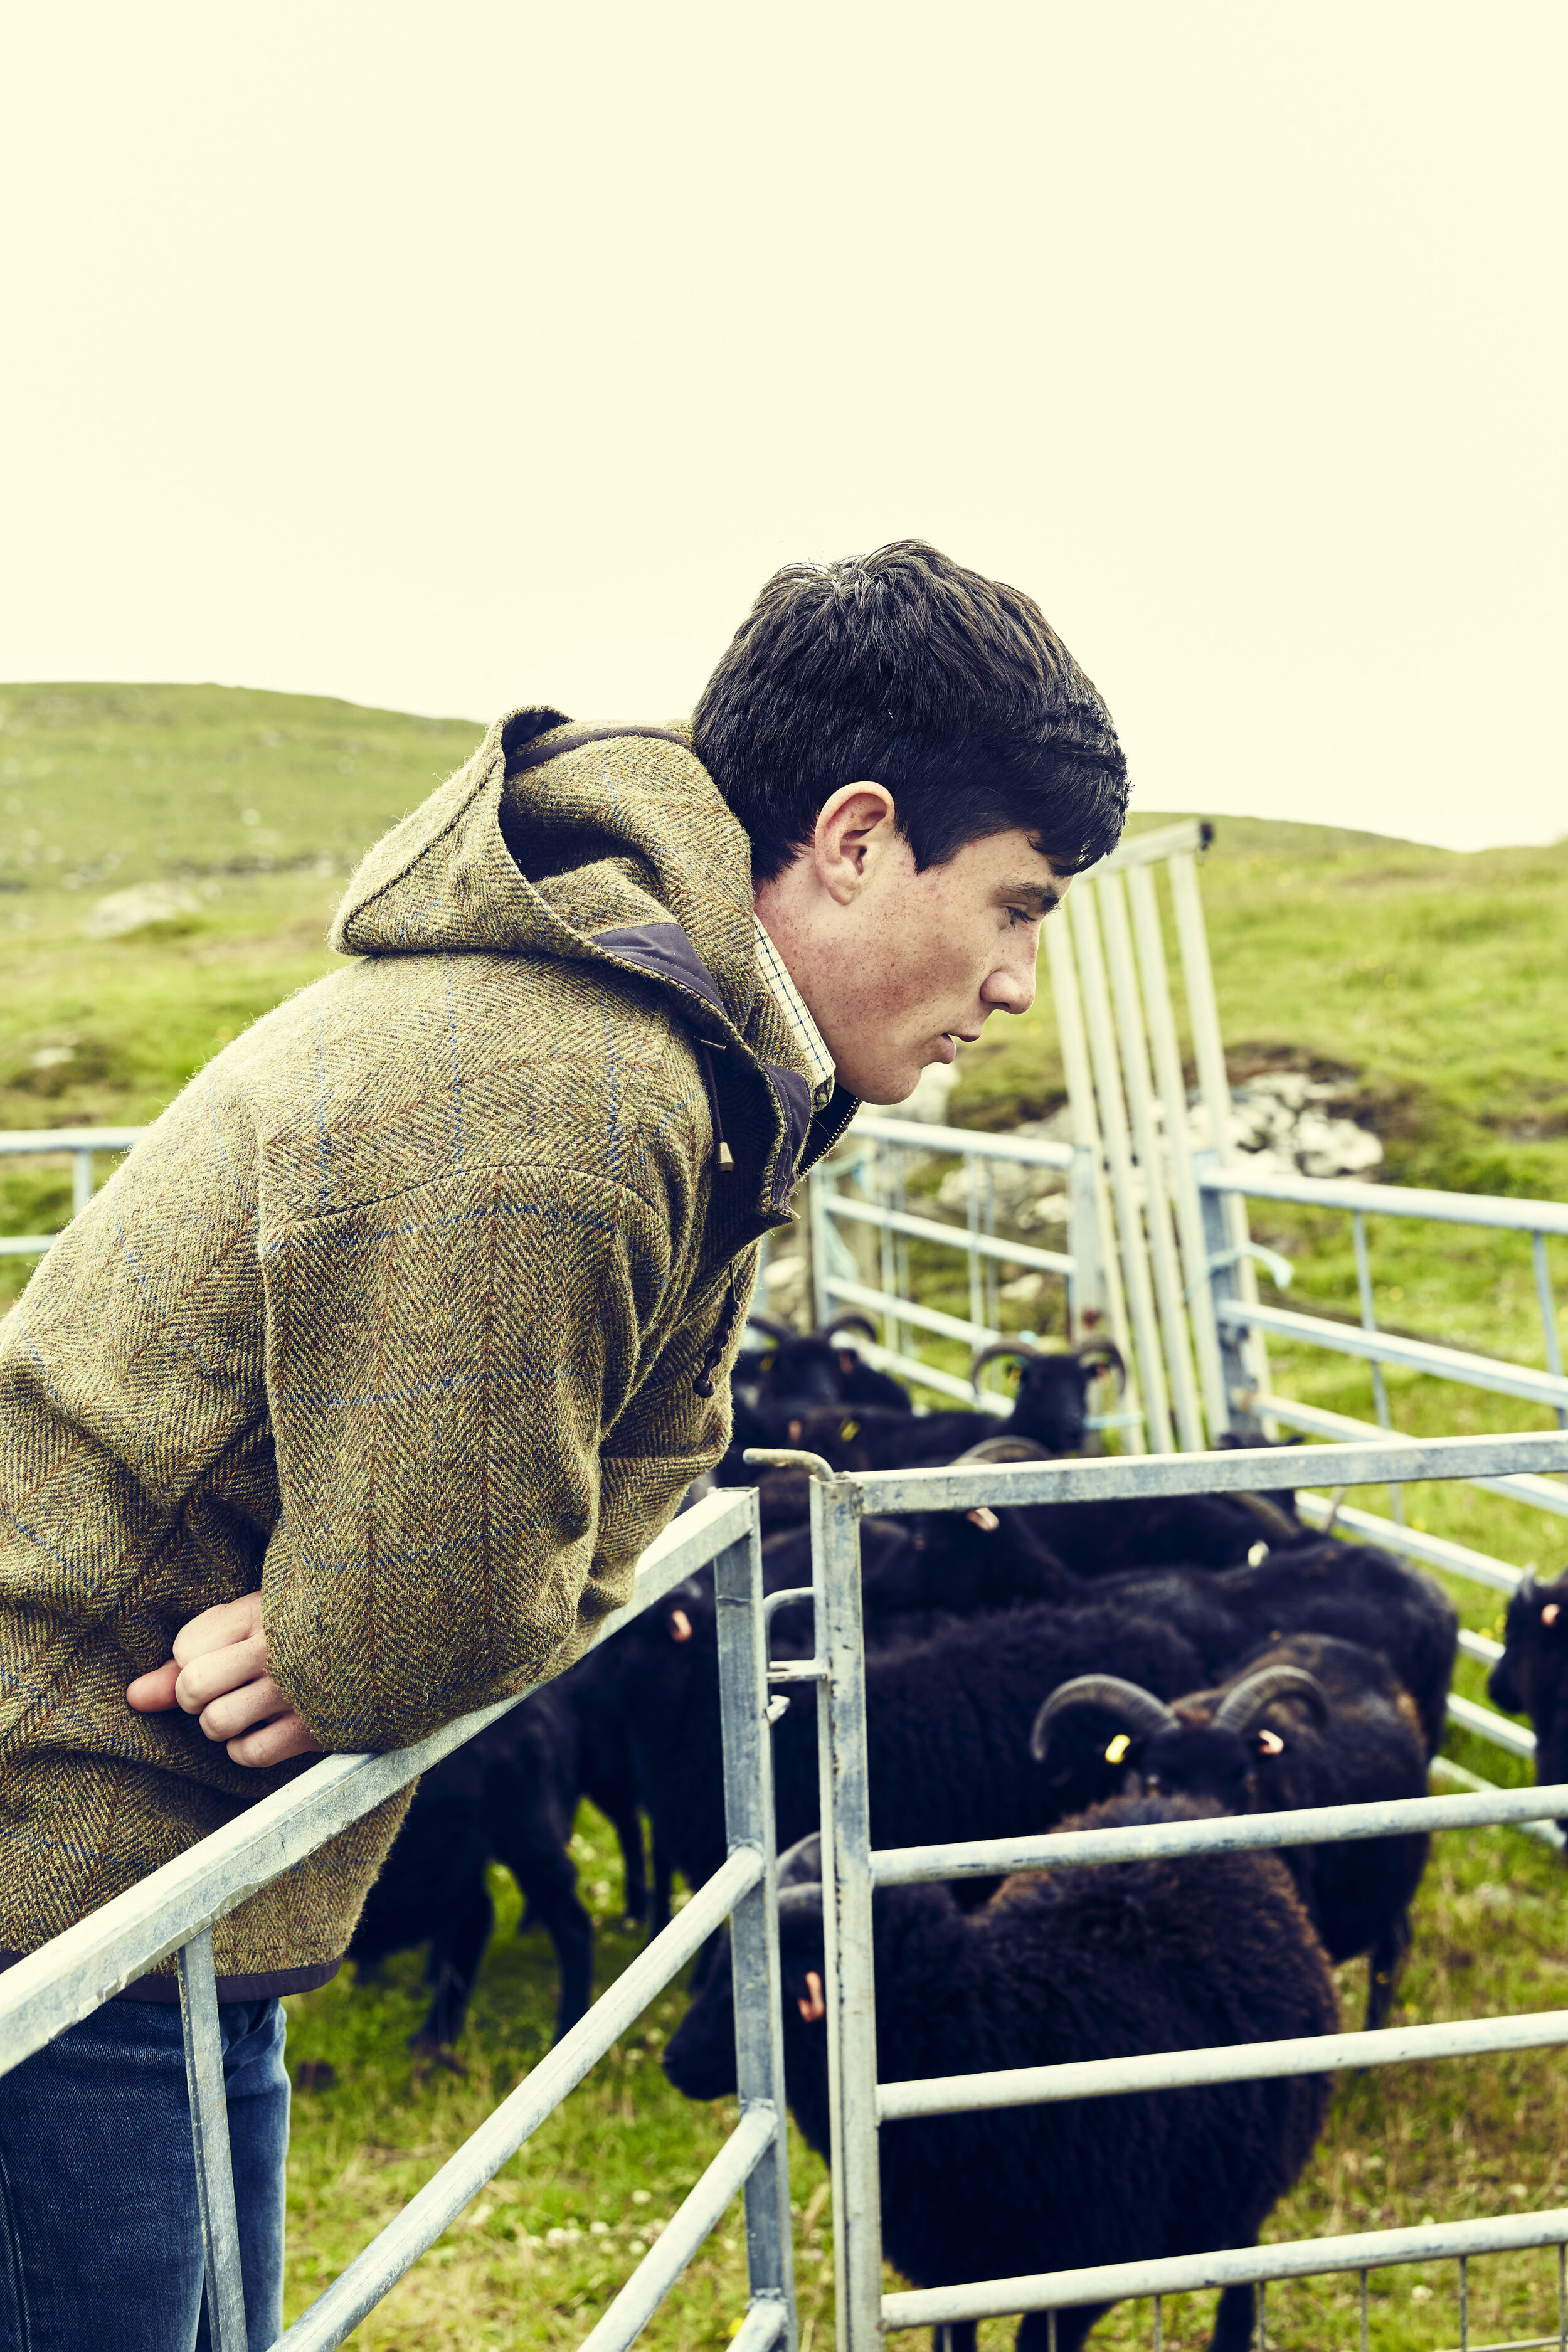 Hamish 'helping' to gather sheep on the croft.